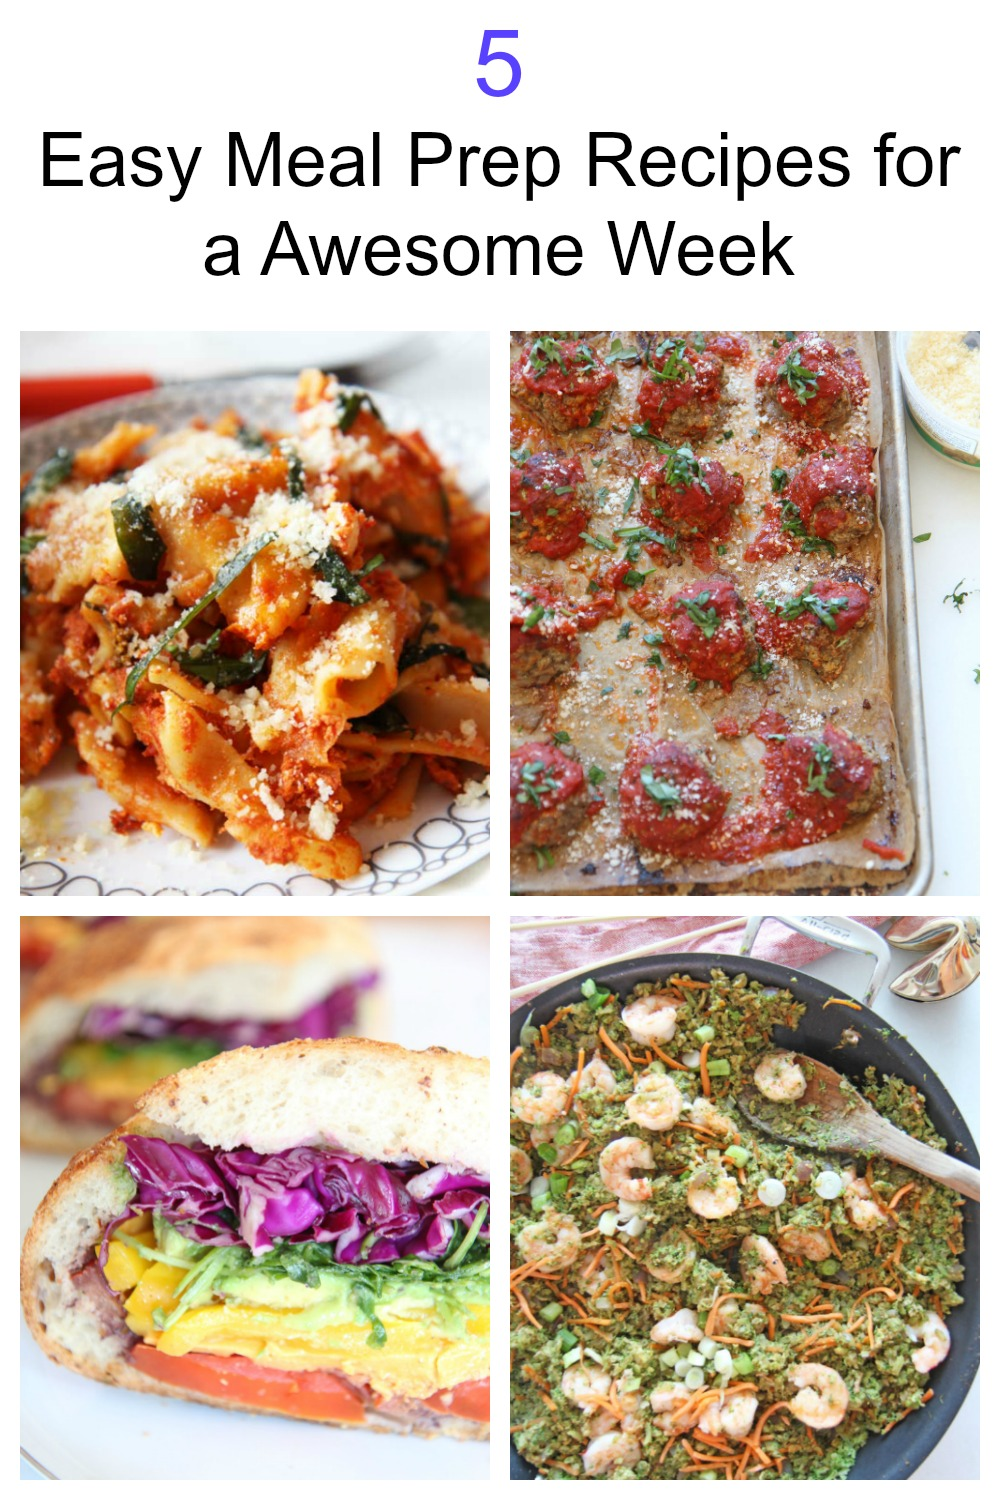 5 Awesome Recipes For Meal PrepNothing better then meal prep to make your week much less crazy. Prep, smile and eat! Lunches include sheet pan meatballs, turmeric lentil soup, a big veggie sandwich and more. Happy cooking!